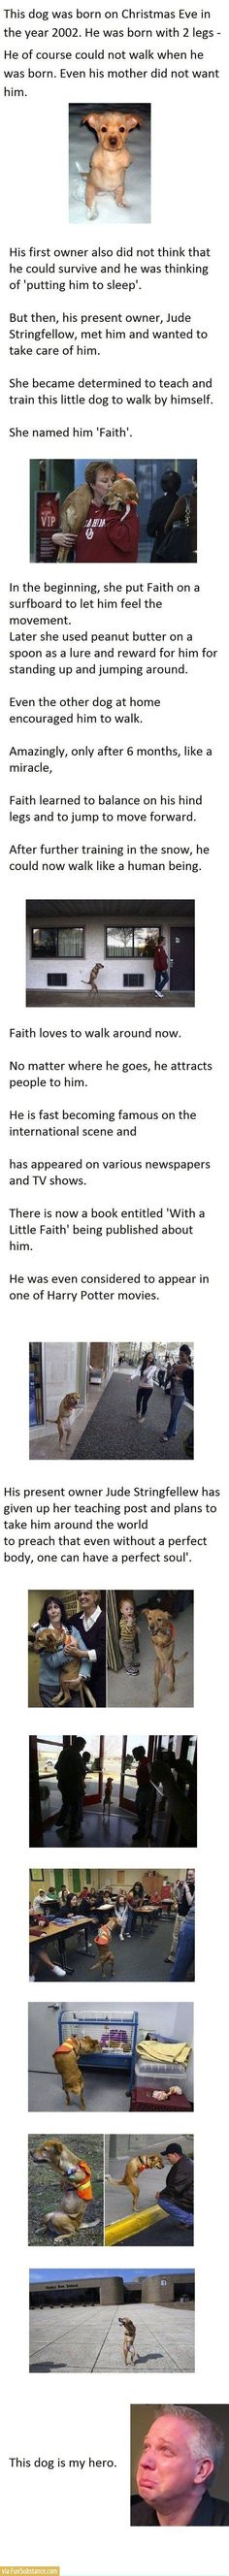 Amazing!!! The owner of this dog should be rewarded! <3